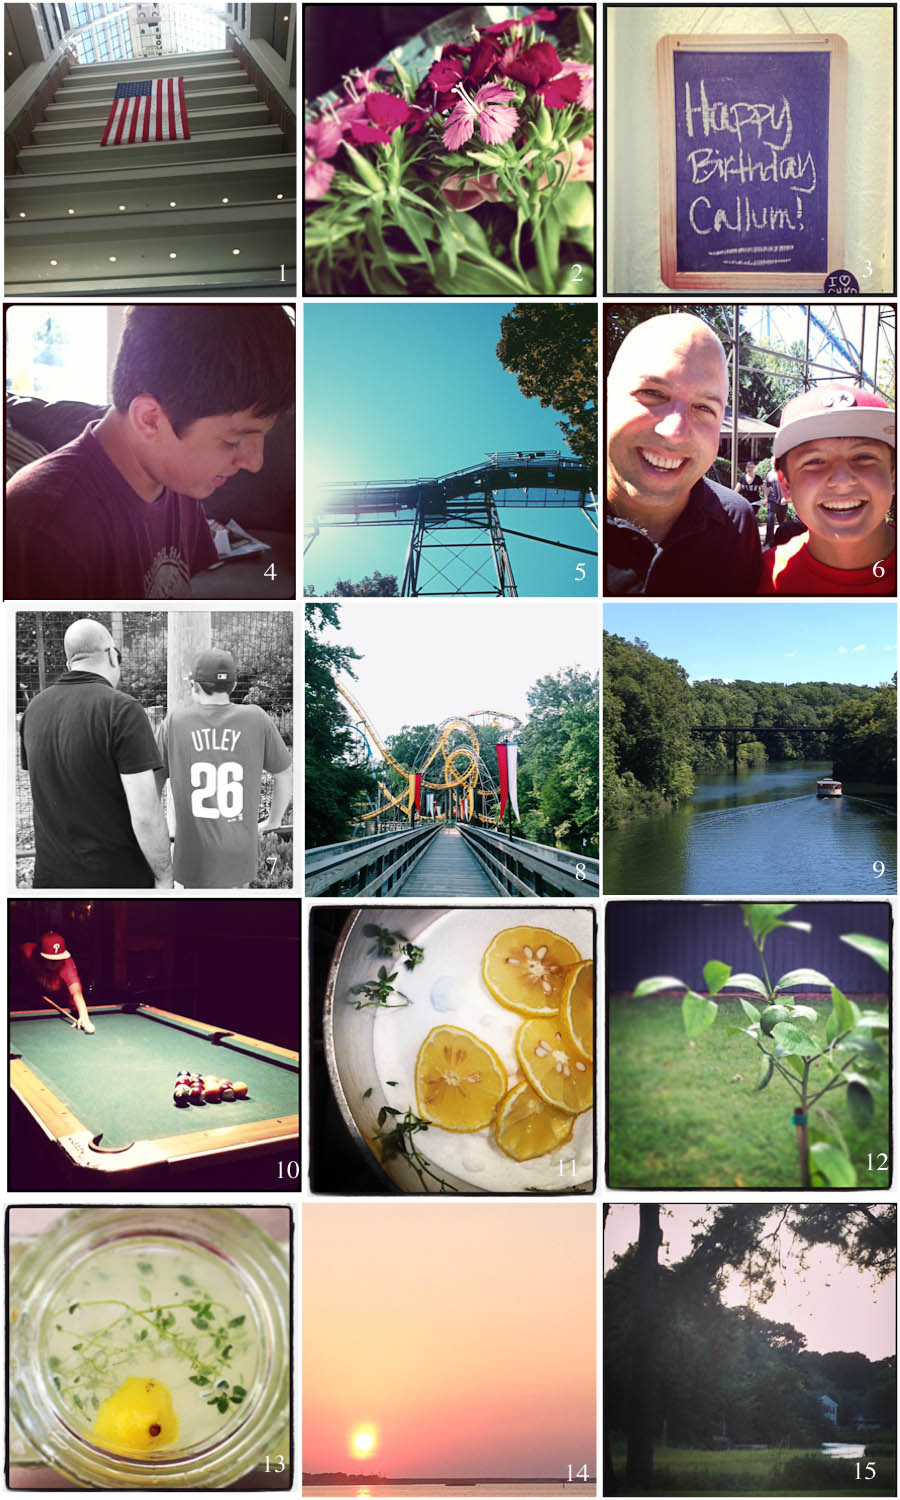 1. US Patent Office | 2. Birthday Flowers | 3. The Big Day | 4. Opening Presents | 5. Coaster Heaven | 6. My guys | 7. Almost as tall as Papa | 8. Beautiful Busch Gardens | 9. My kind of ride | 10. Post-park pool | 11. Simple syrup | 12. Lemon tree | 13. Lemonade | 14. River Sunset | 15. Marsh at twilight